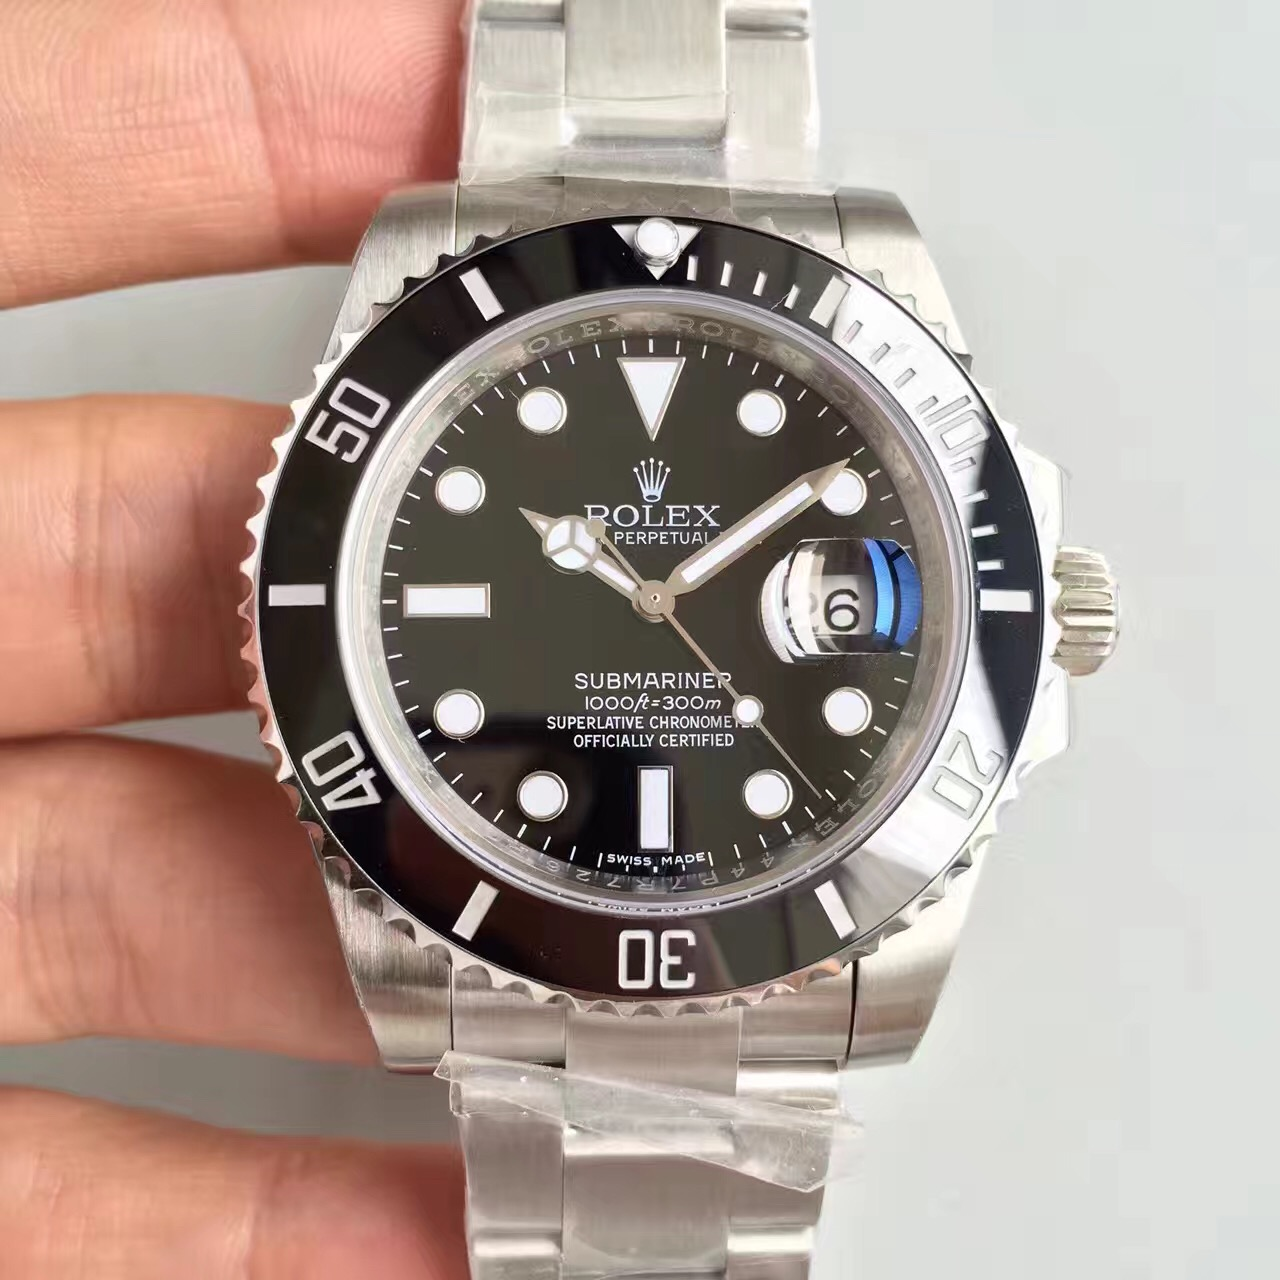 V7 Rolex black water ghost nigga v7 version SUB submariner series 116610LN with calendar v7 has been discontinued